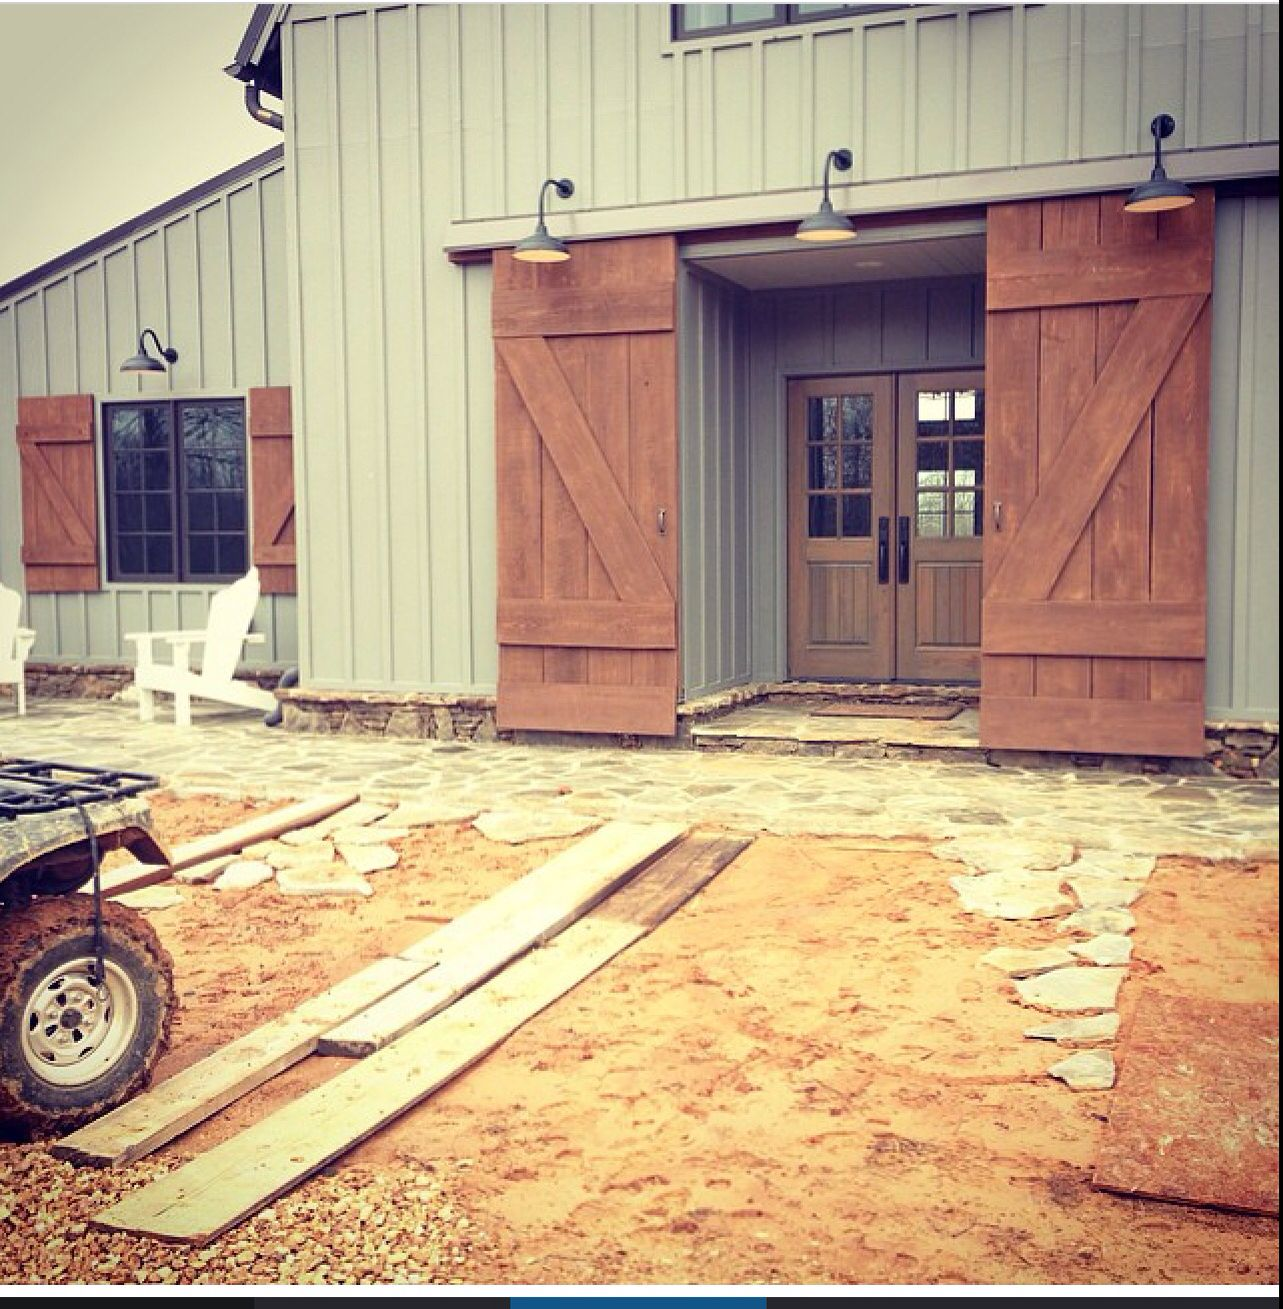 Exterior sliding barn doors - Traditional Exterior Sliding Barn Doors Are The Perfect Feature For A Barn Style Home Barn Doors Pinterest Best Traditional Exterior Barn Doors And